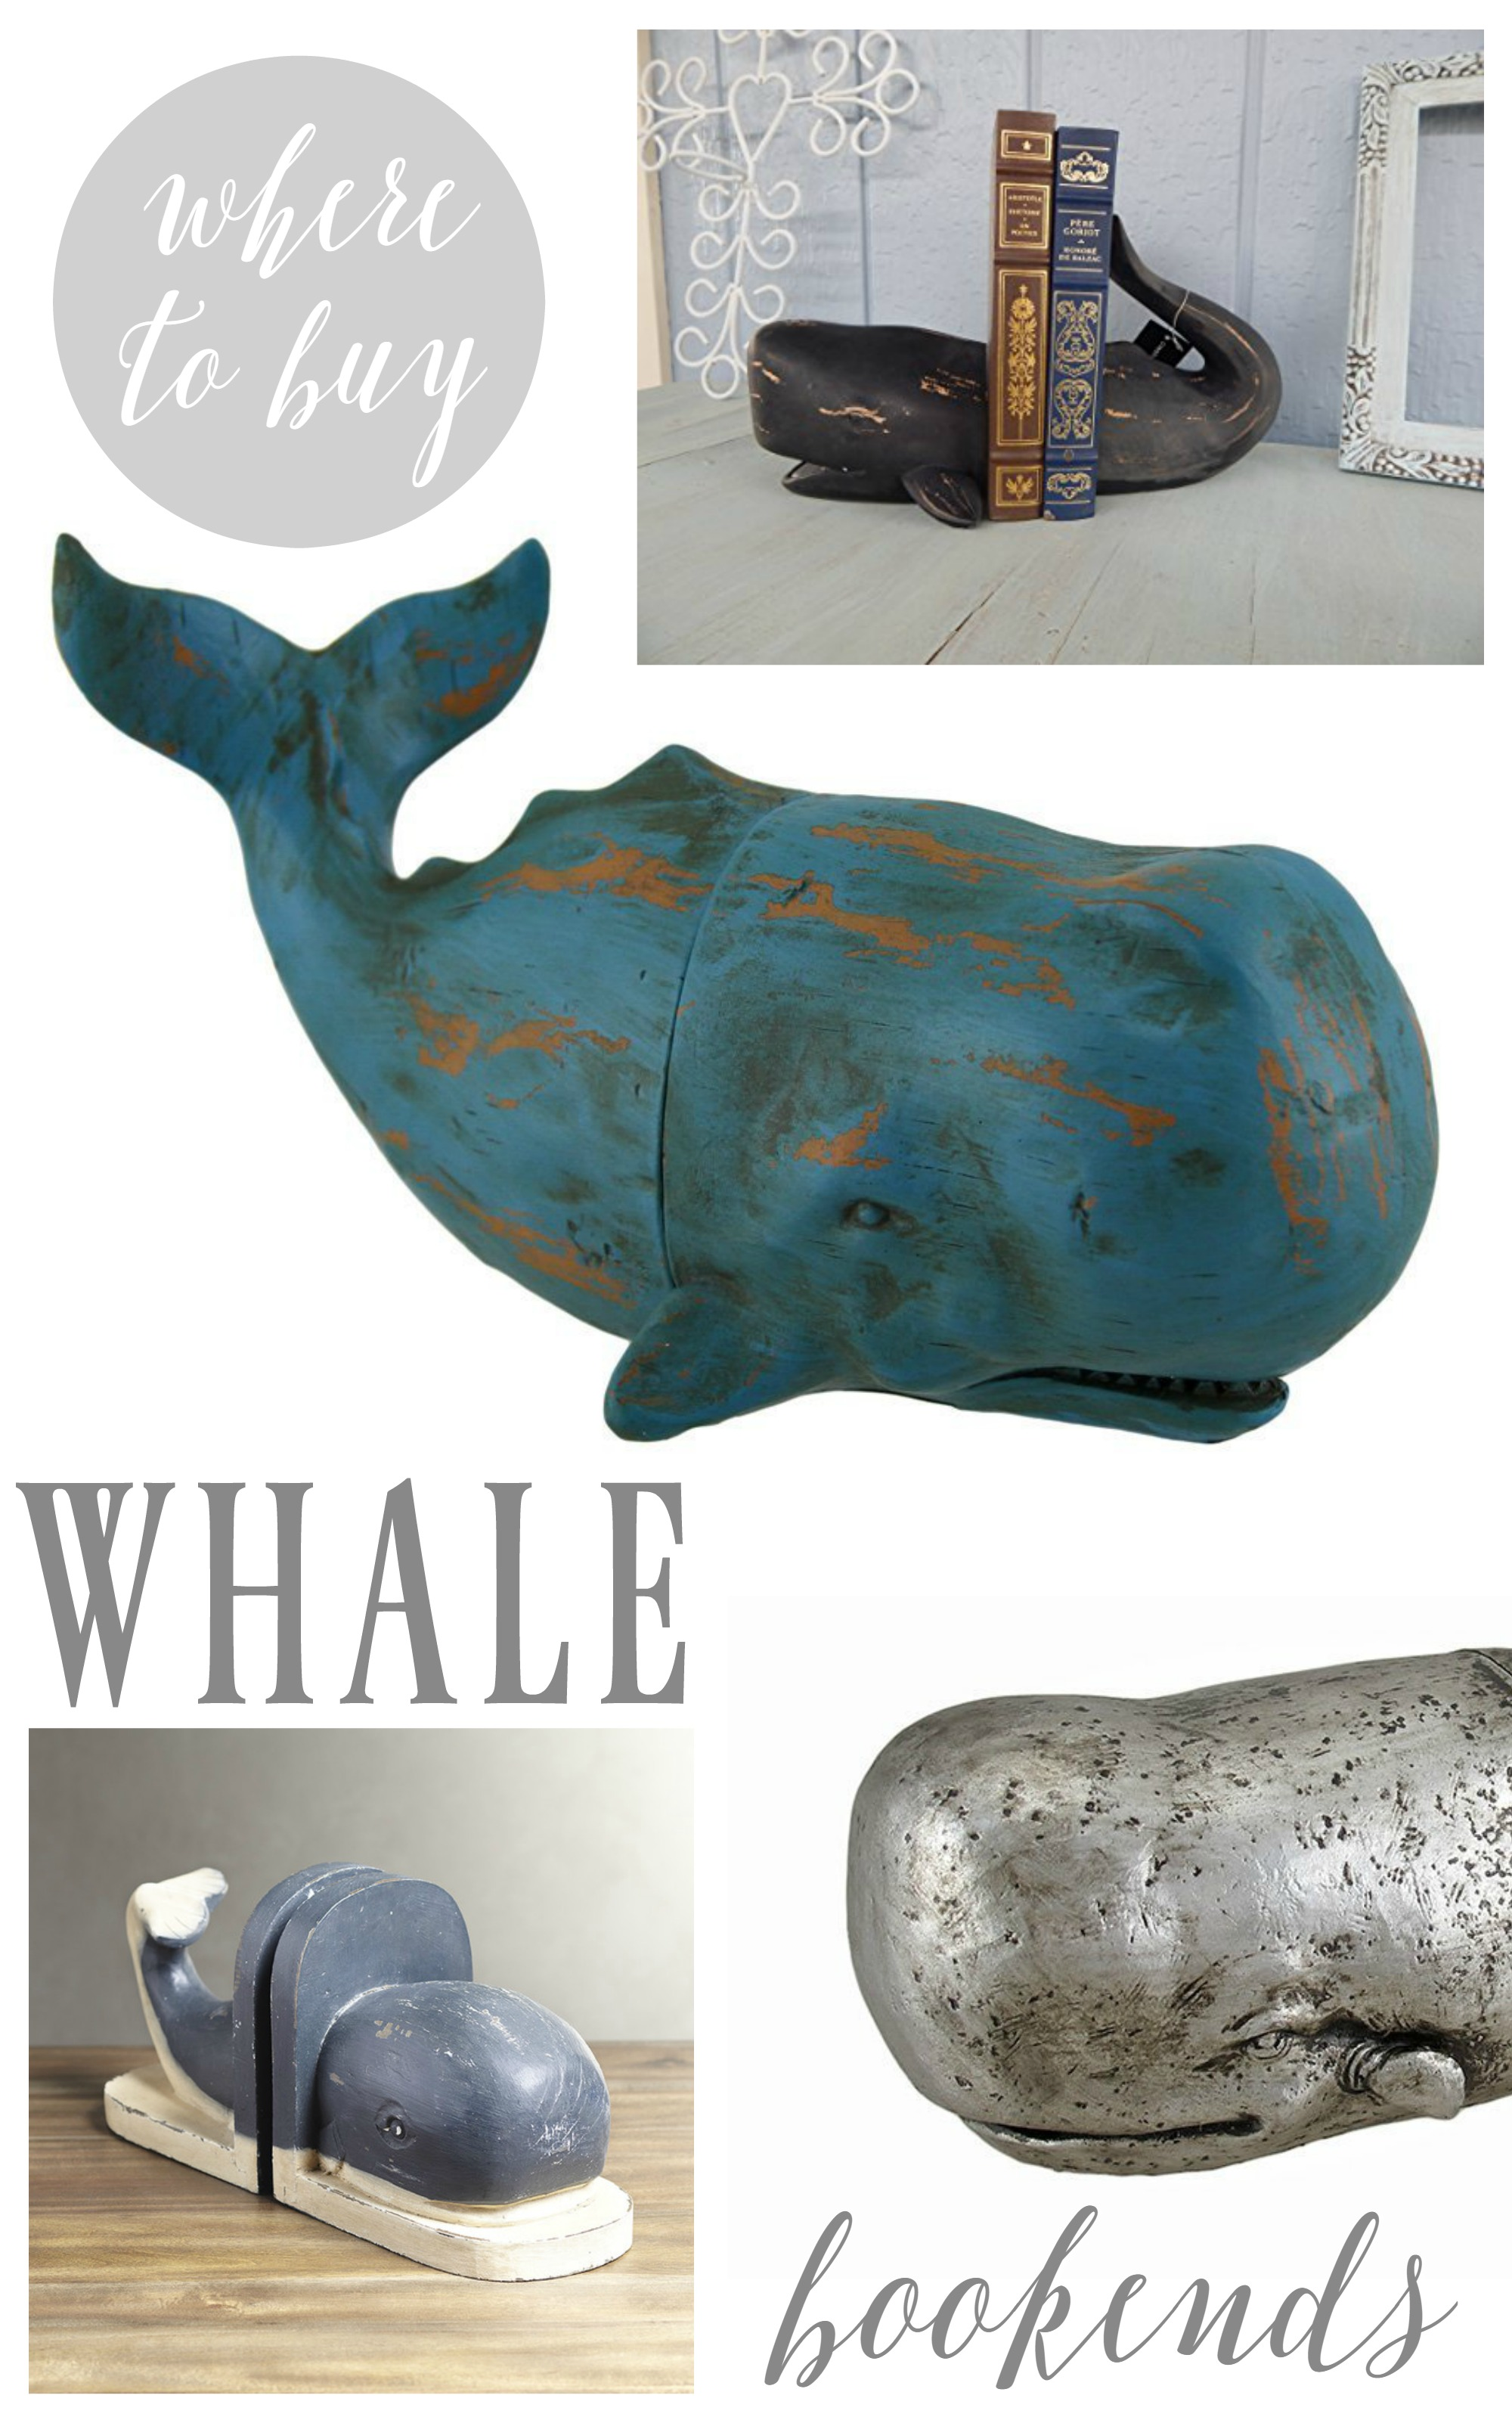 where to buy whale bookends